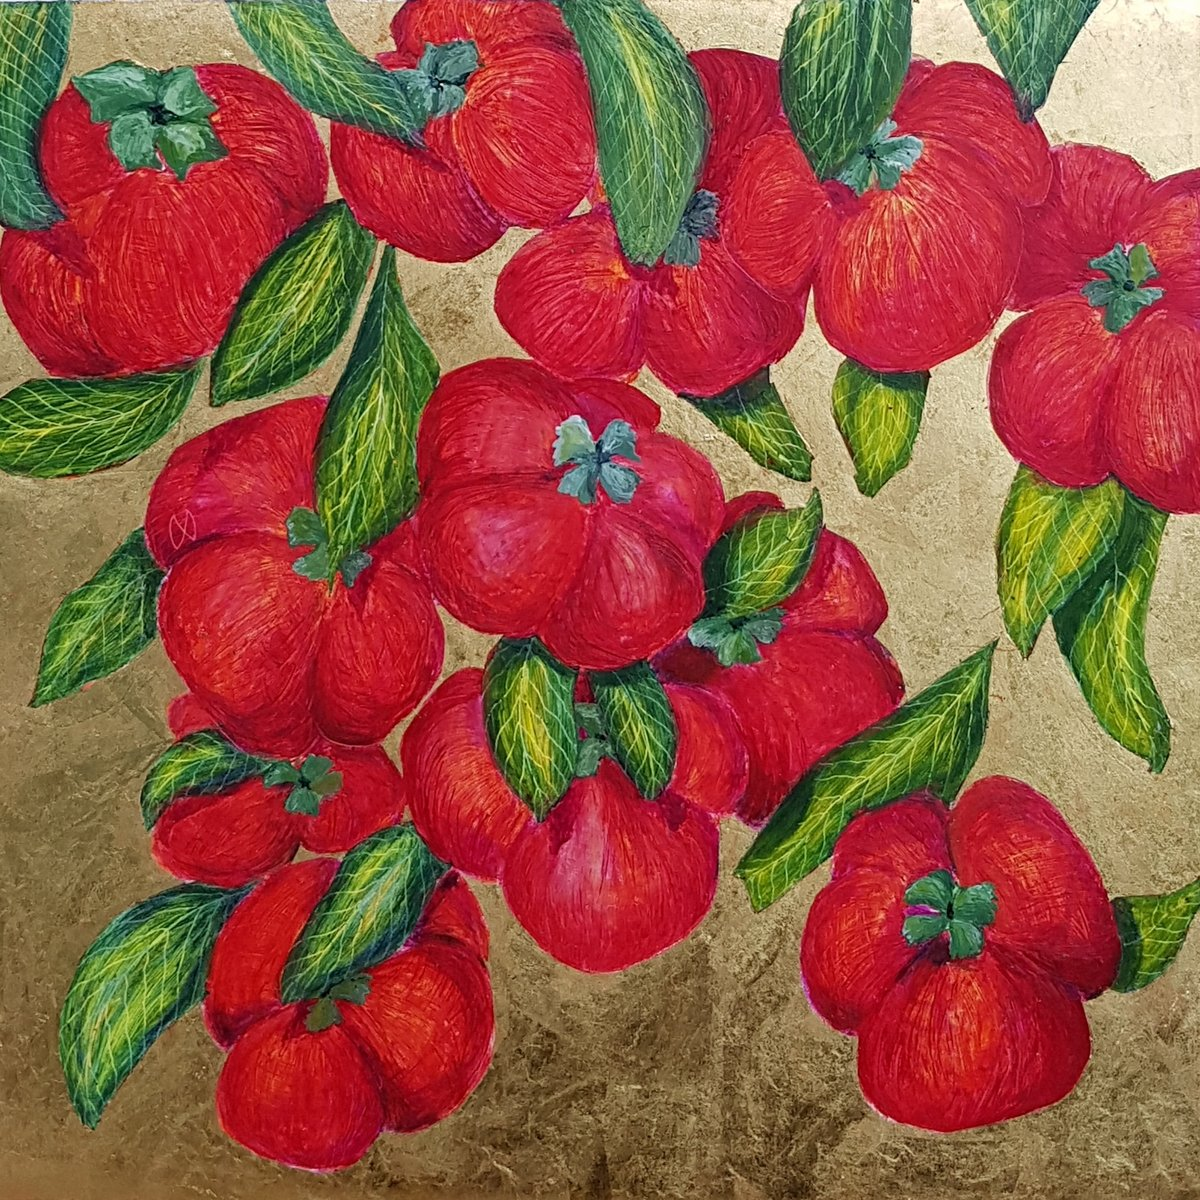 Vibrant painting of a Persimmon tree with juicy red fruit on gold leaf